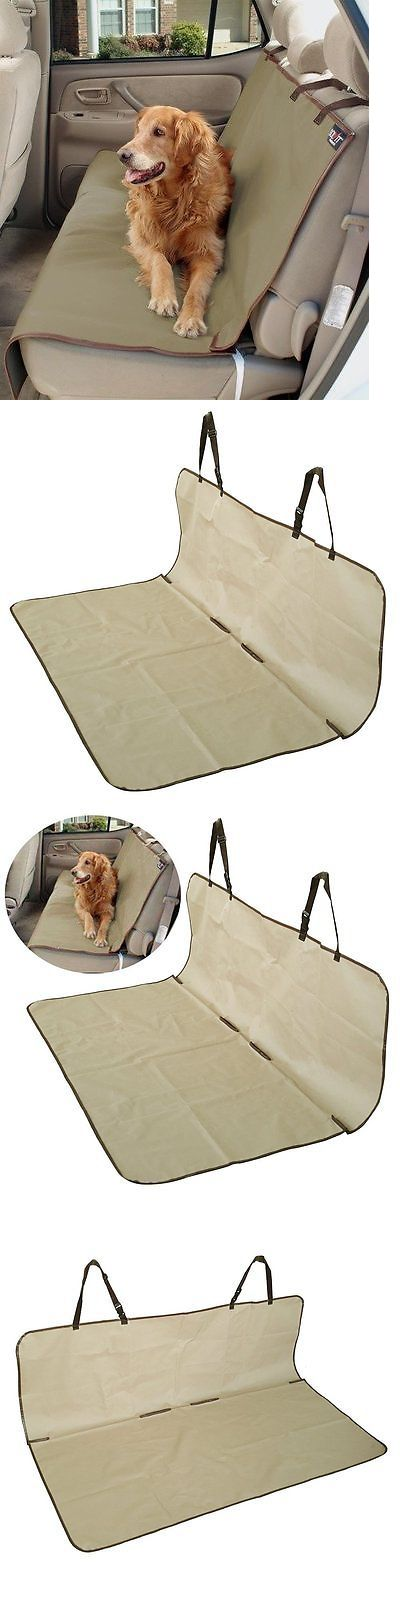 Car Seat Covers 117426: Solvit 62313 Waterproof Car Bench Back Seat Cover For Pets Dogs Cats New -> BUY IT NOW ONLY: $30.99 on eBay!